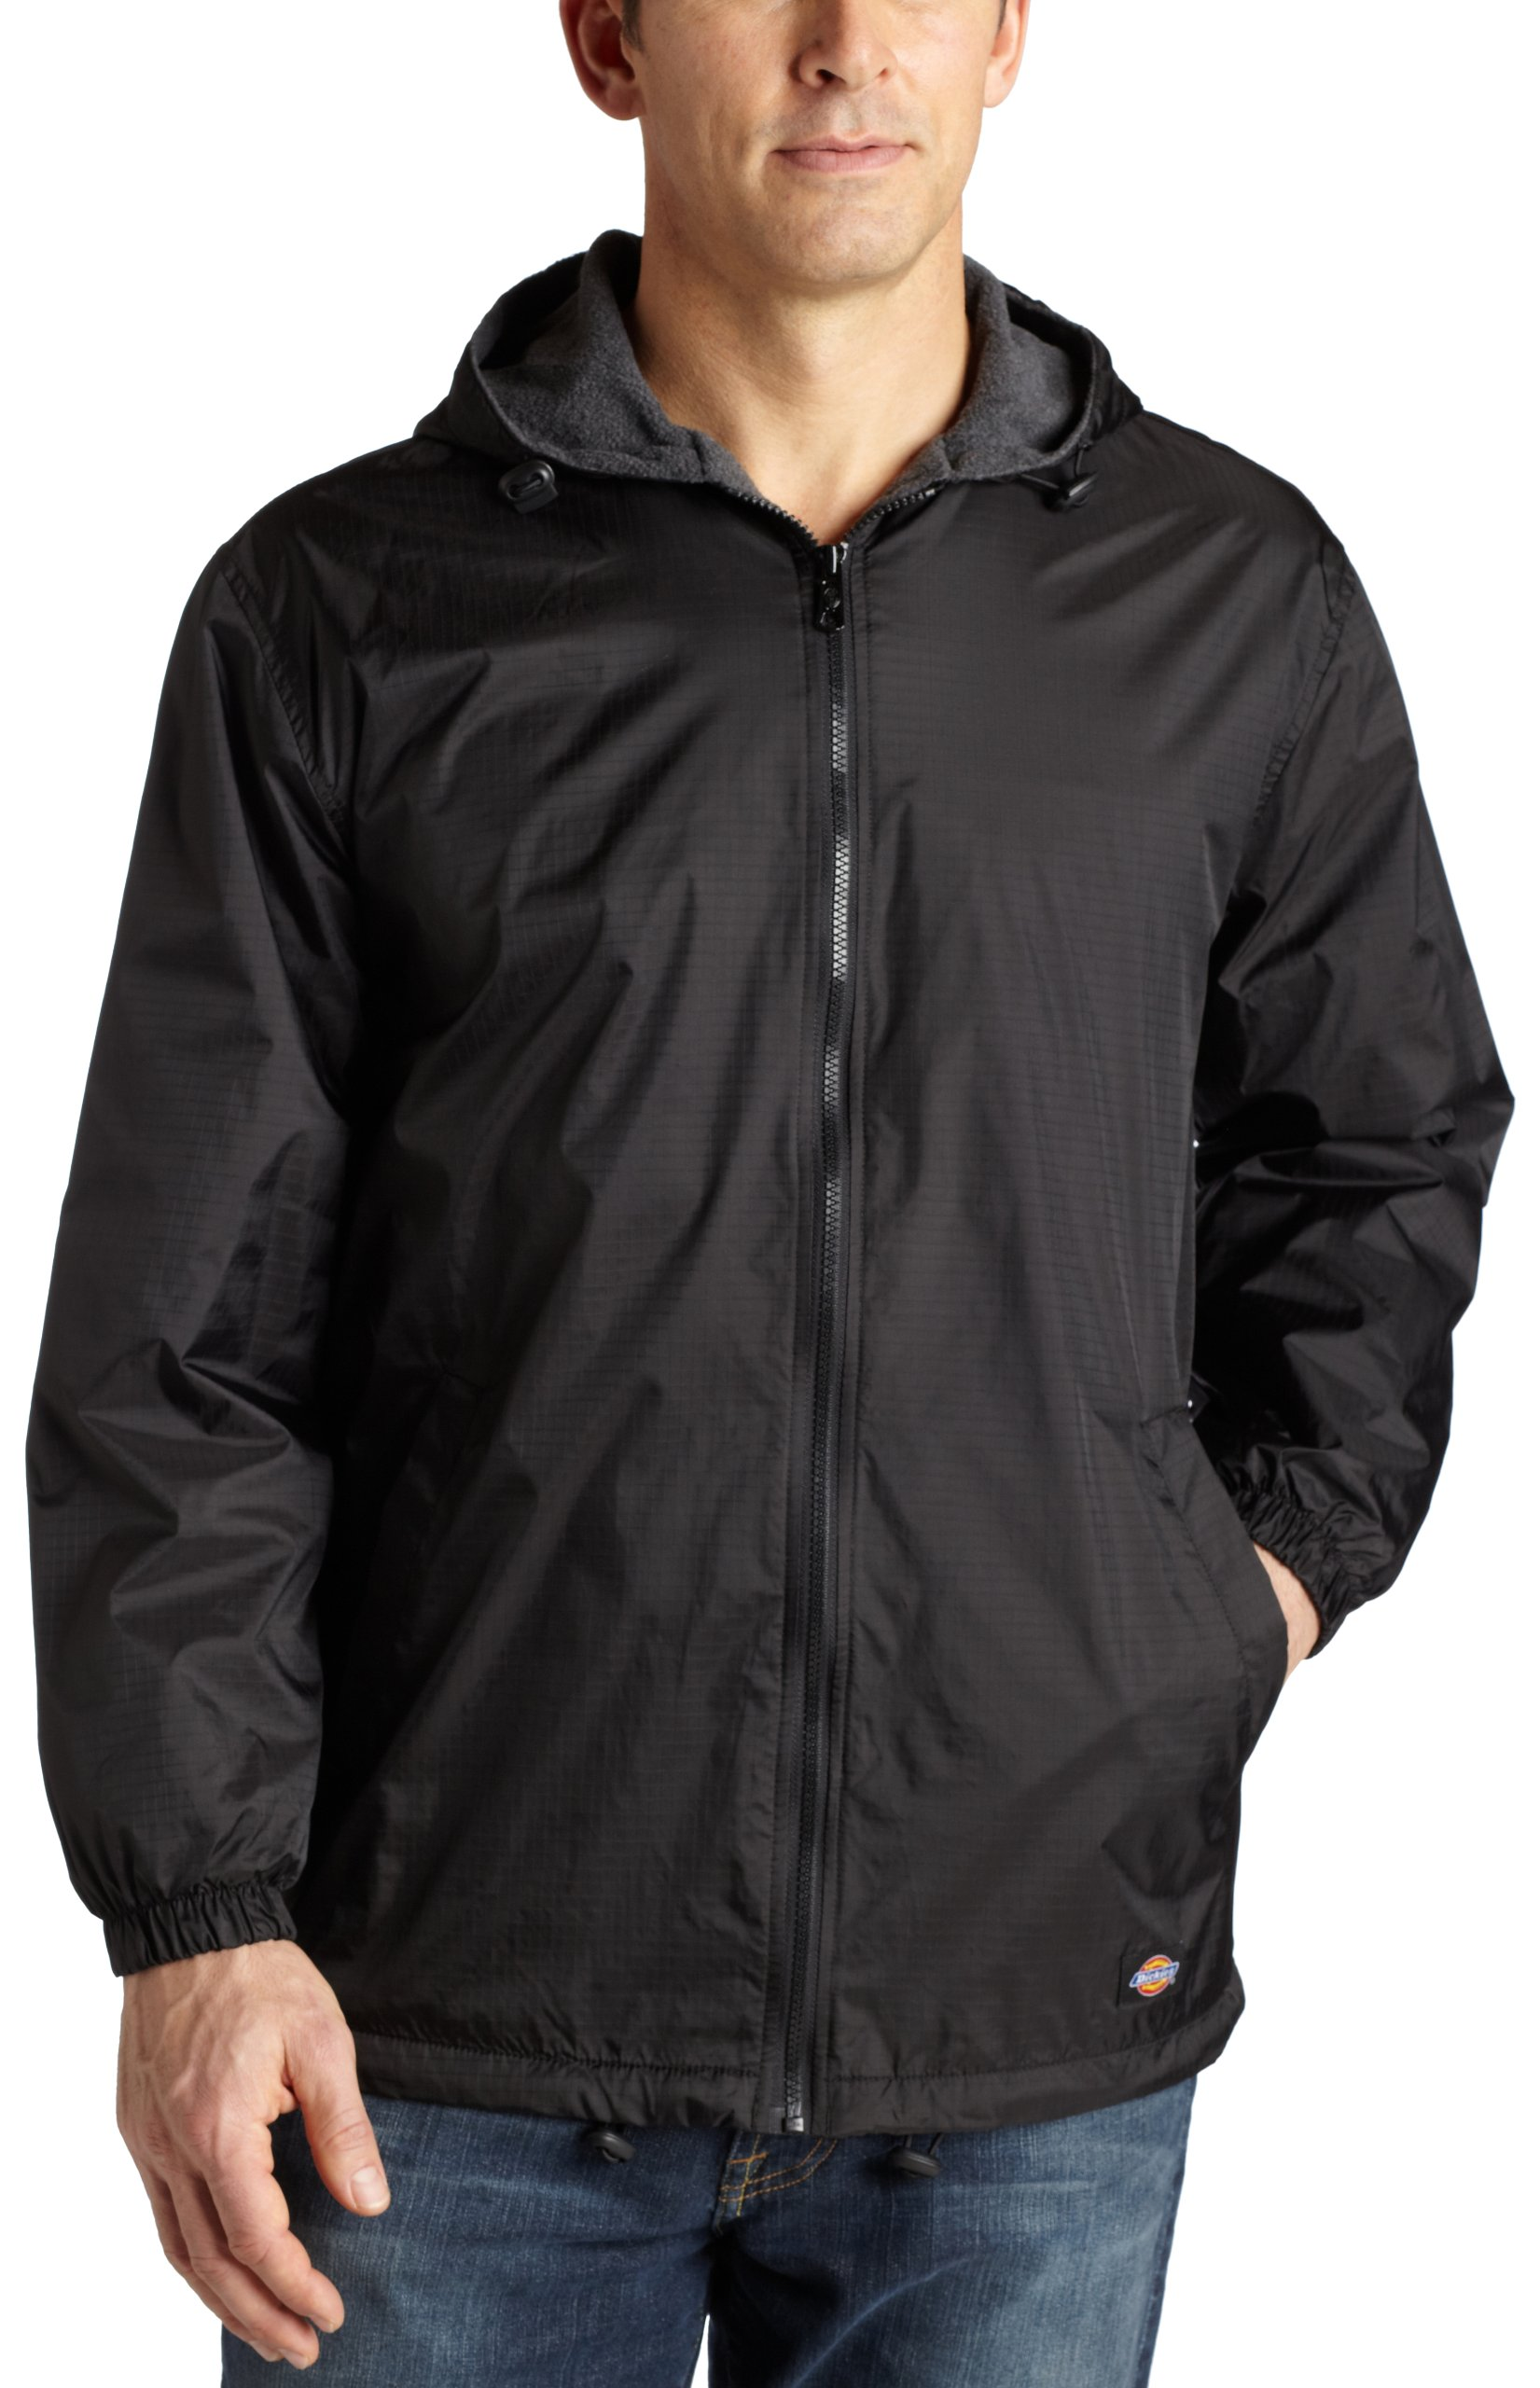 Dickies Men's Fleece Lined Hooded Jacket, Black, 3XL